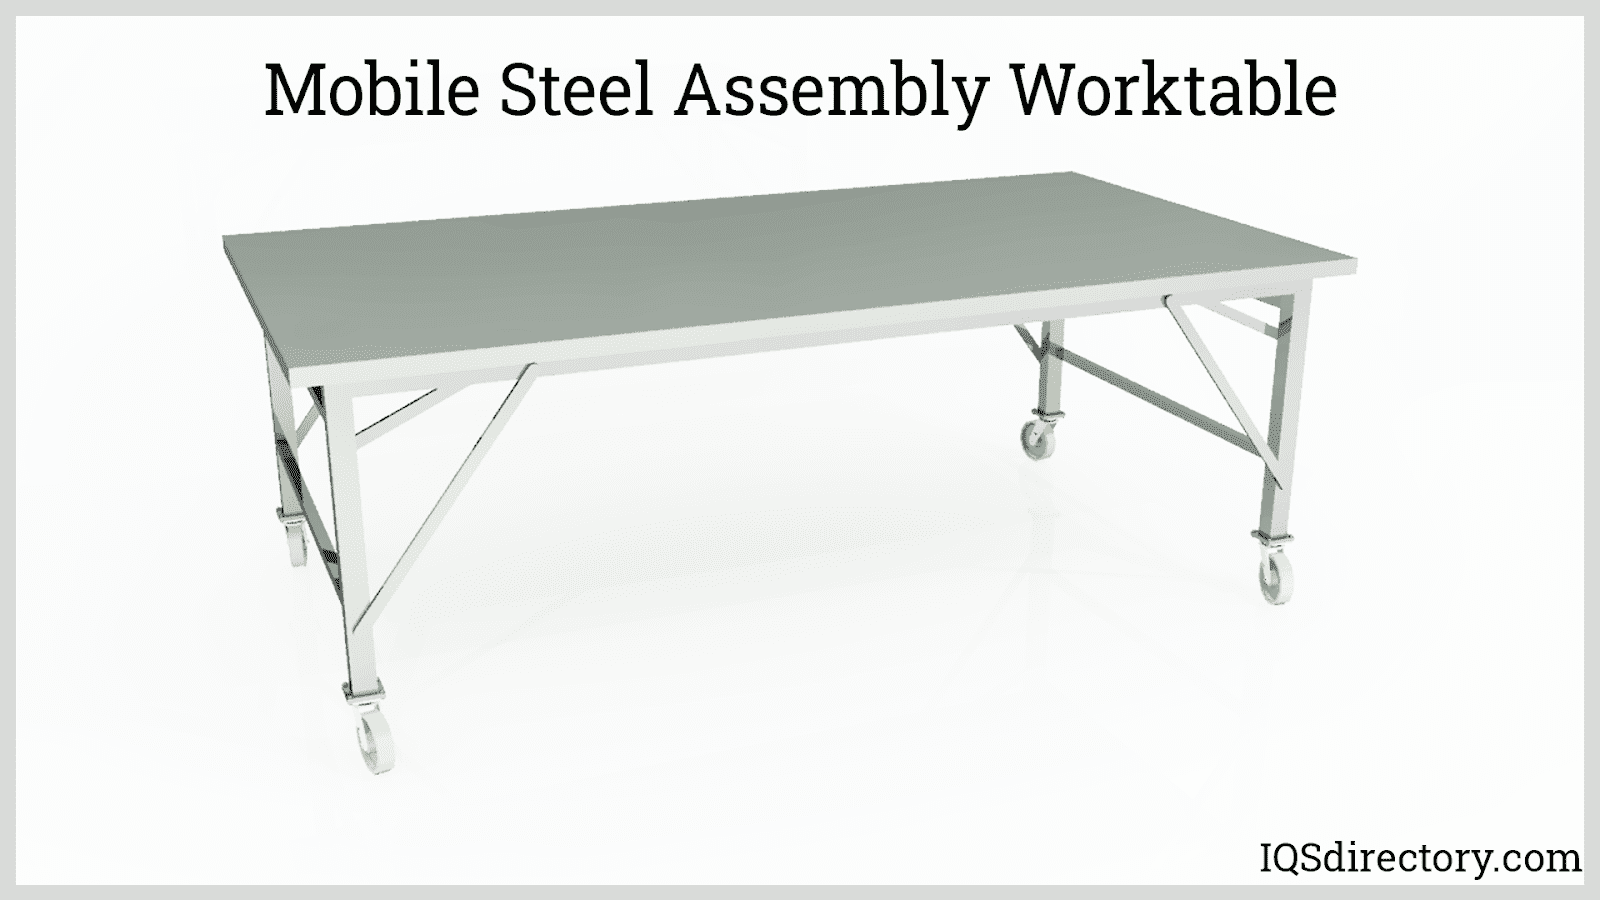 Mobile Steel Assembly Worktable